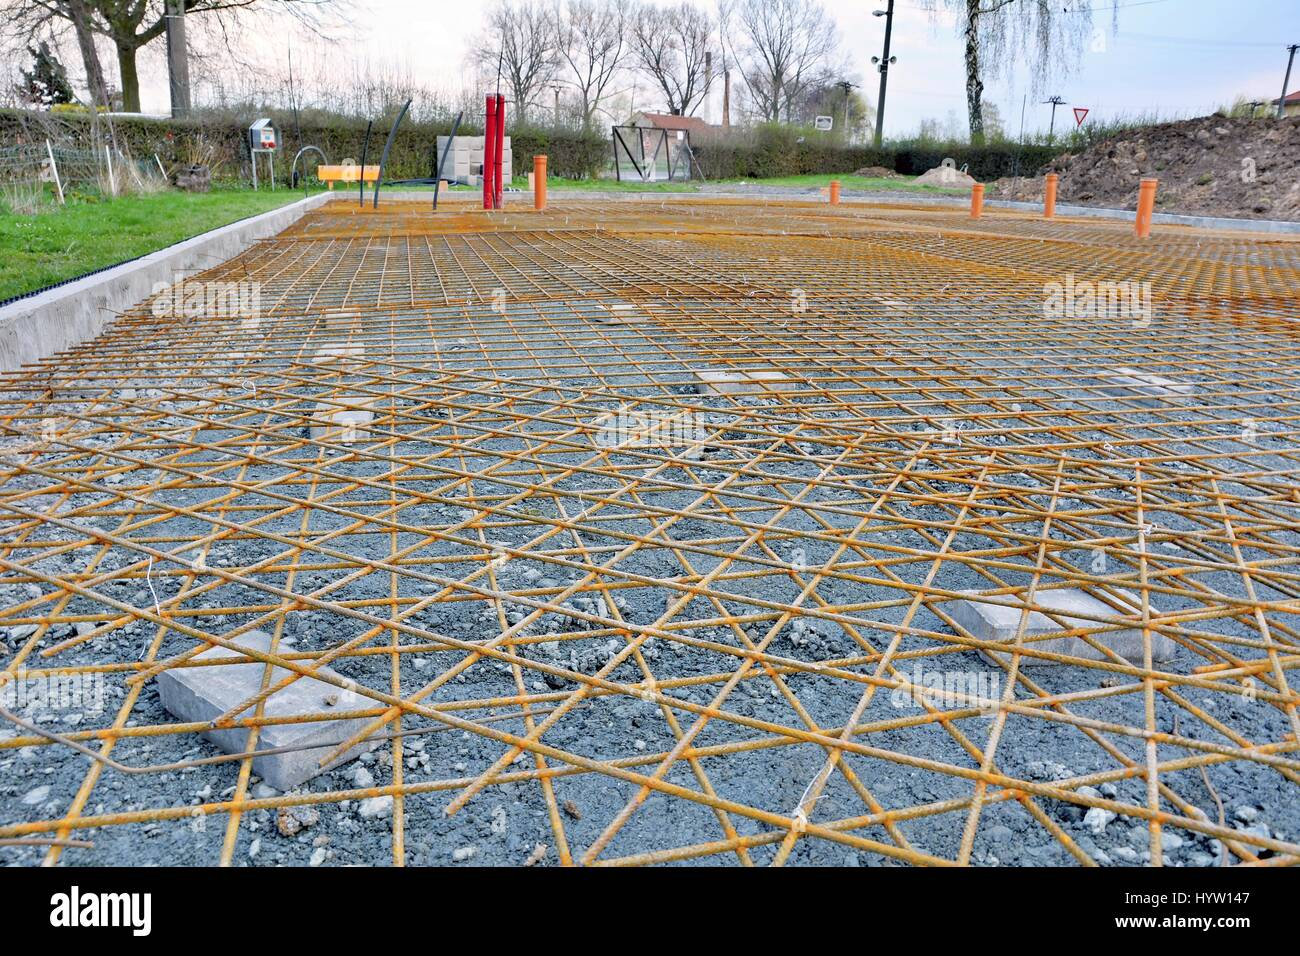 Newly Built House Foundations With Reinforcing Wire Mesh Ready For Concrete  Base Plate.